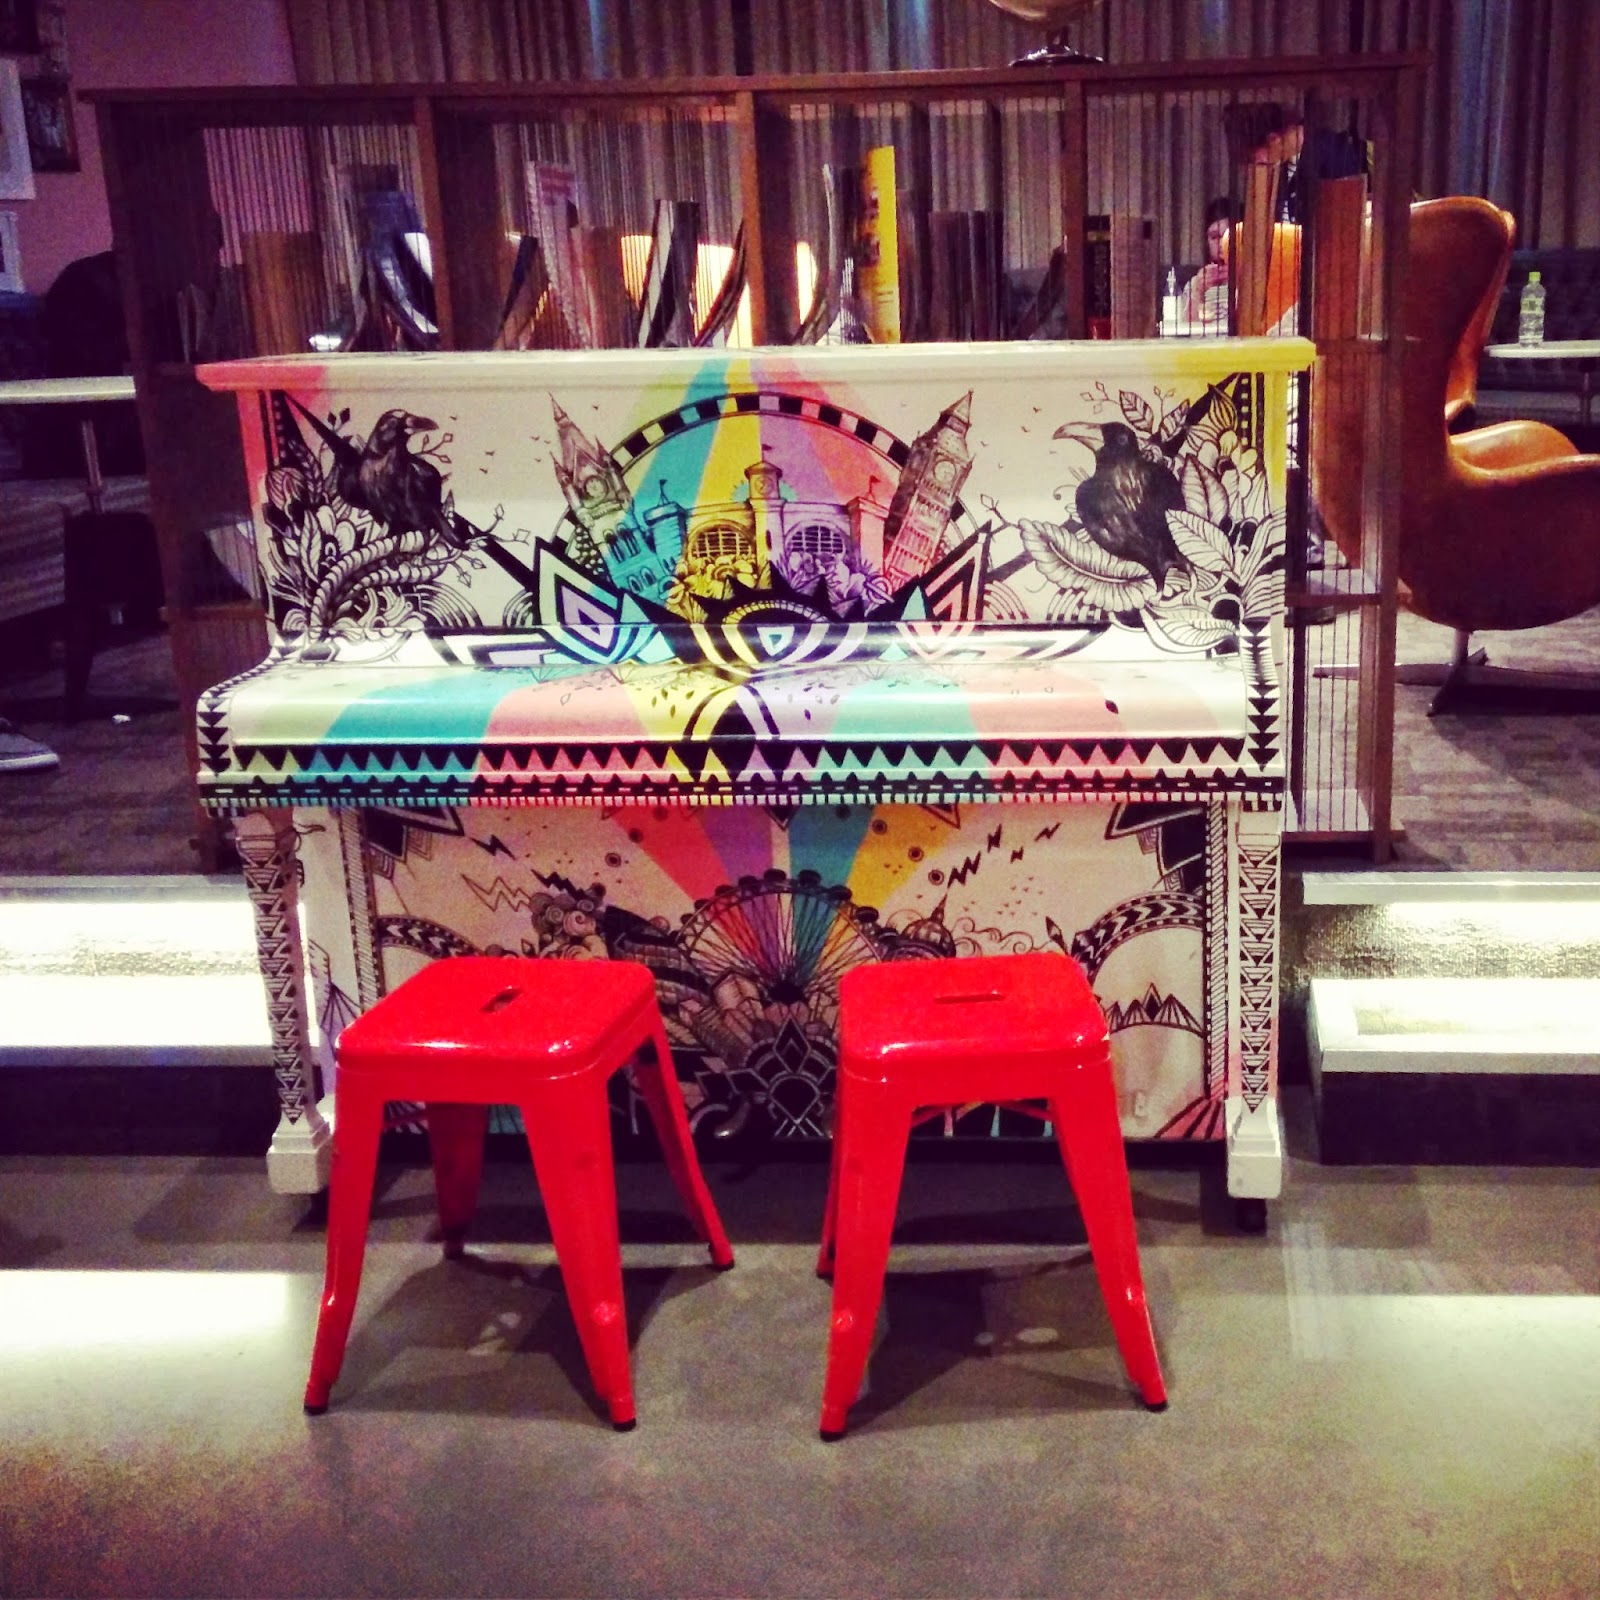 Piano near the bar